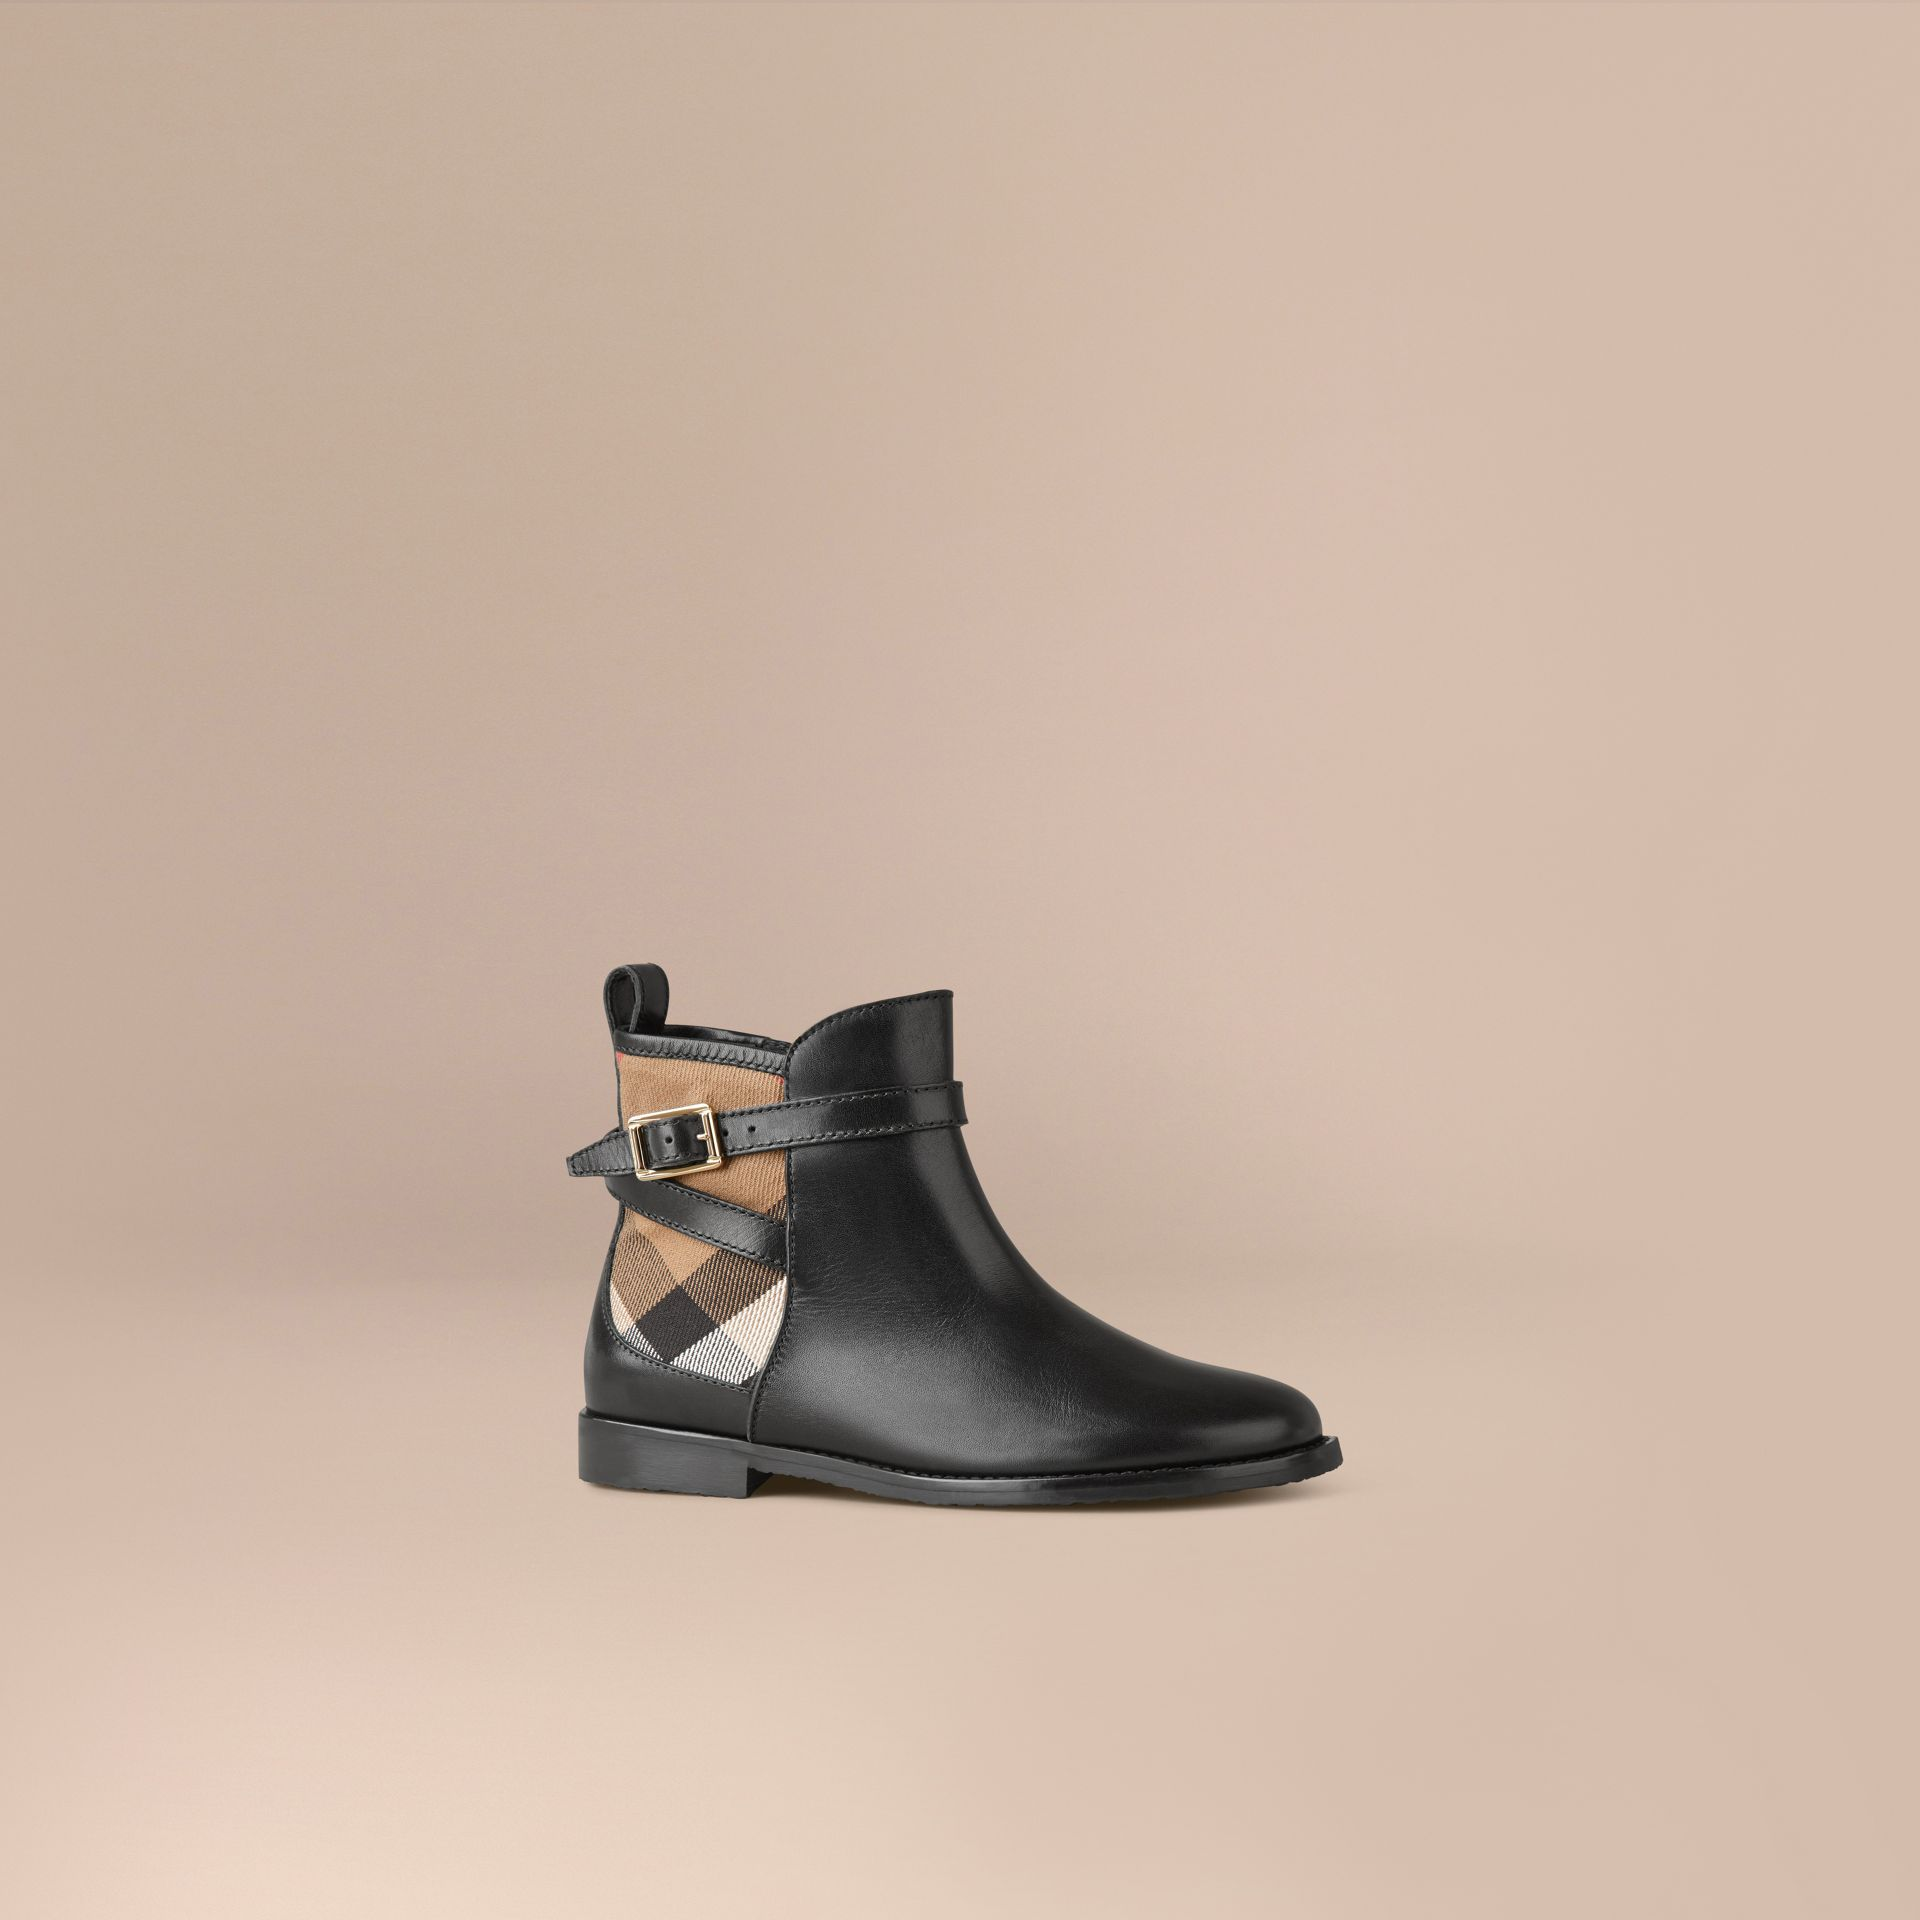 House Check Panel Leather Ankle Boots Black - gallery image 1